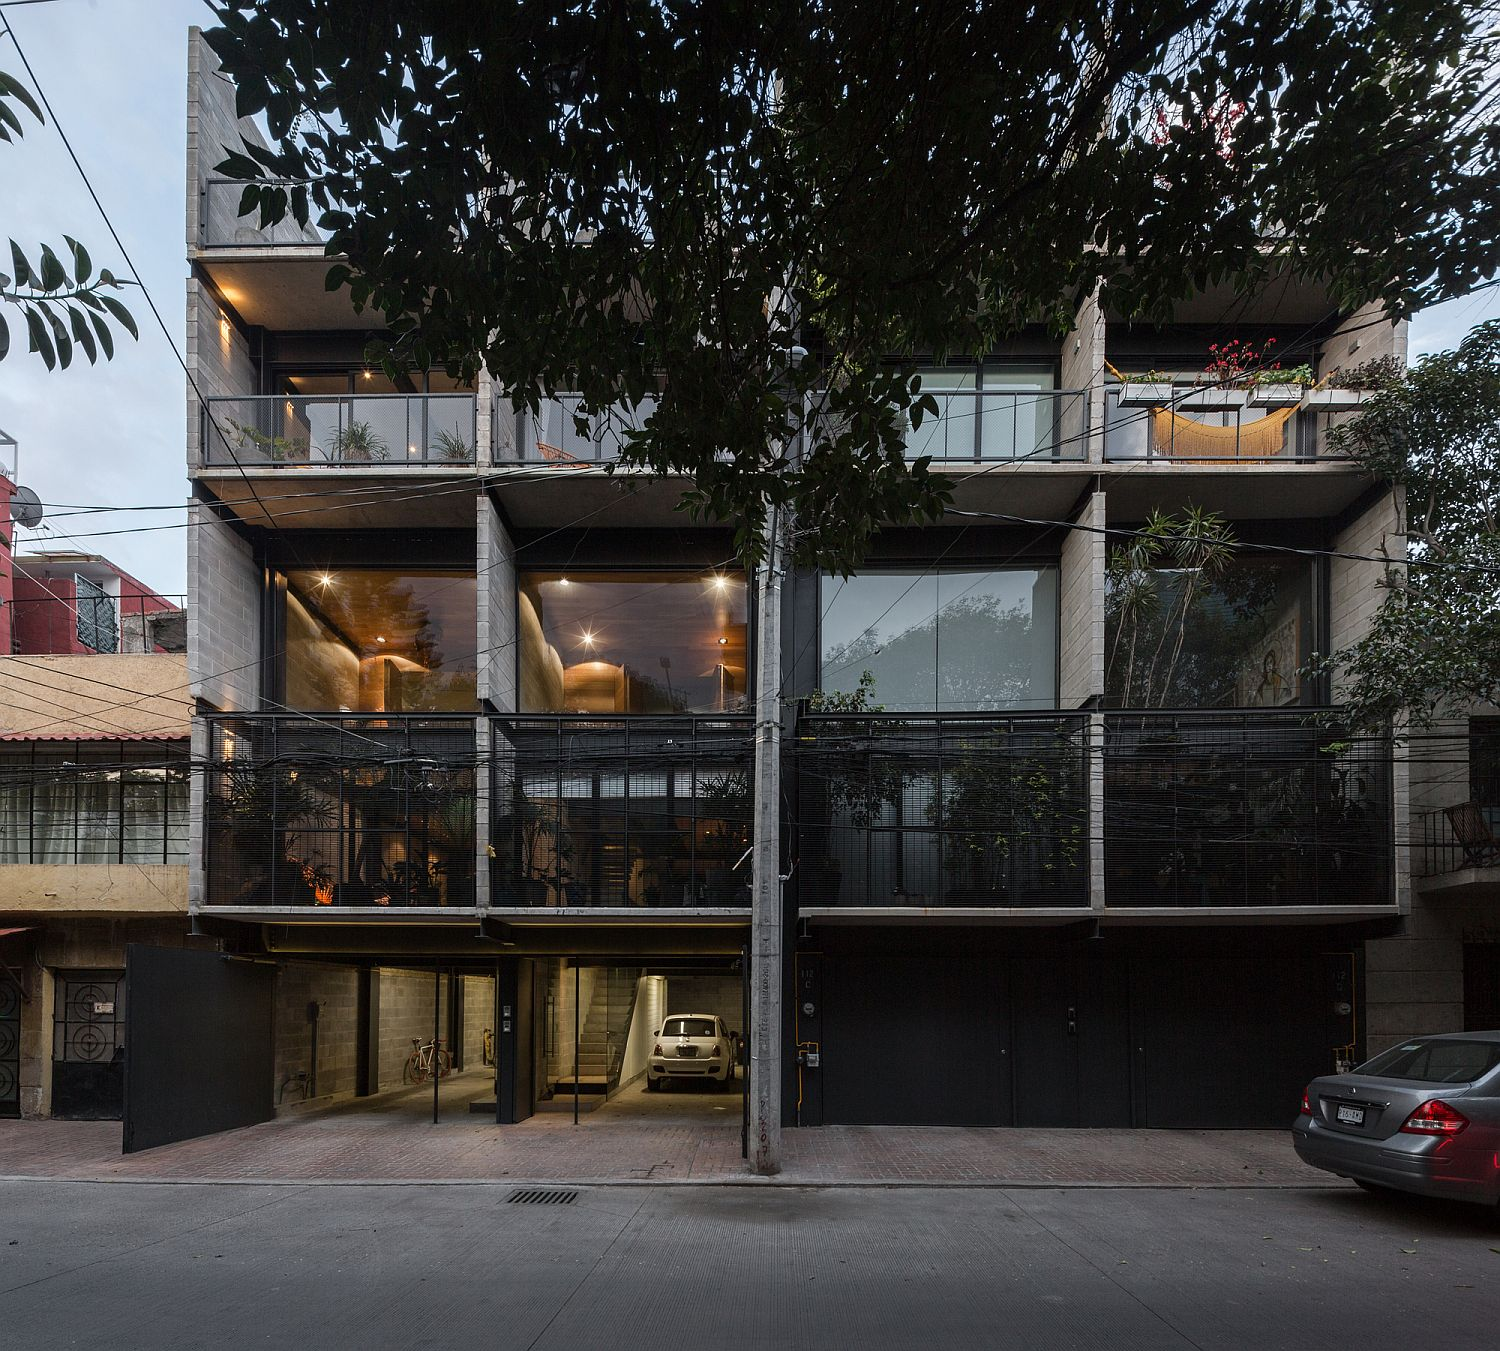 Towns Homes For Rent: Concrete, Steel And Glass Townhouses Invite In Minimalism